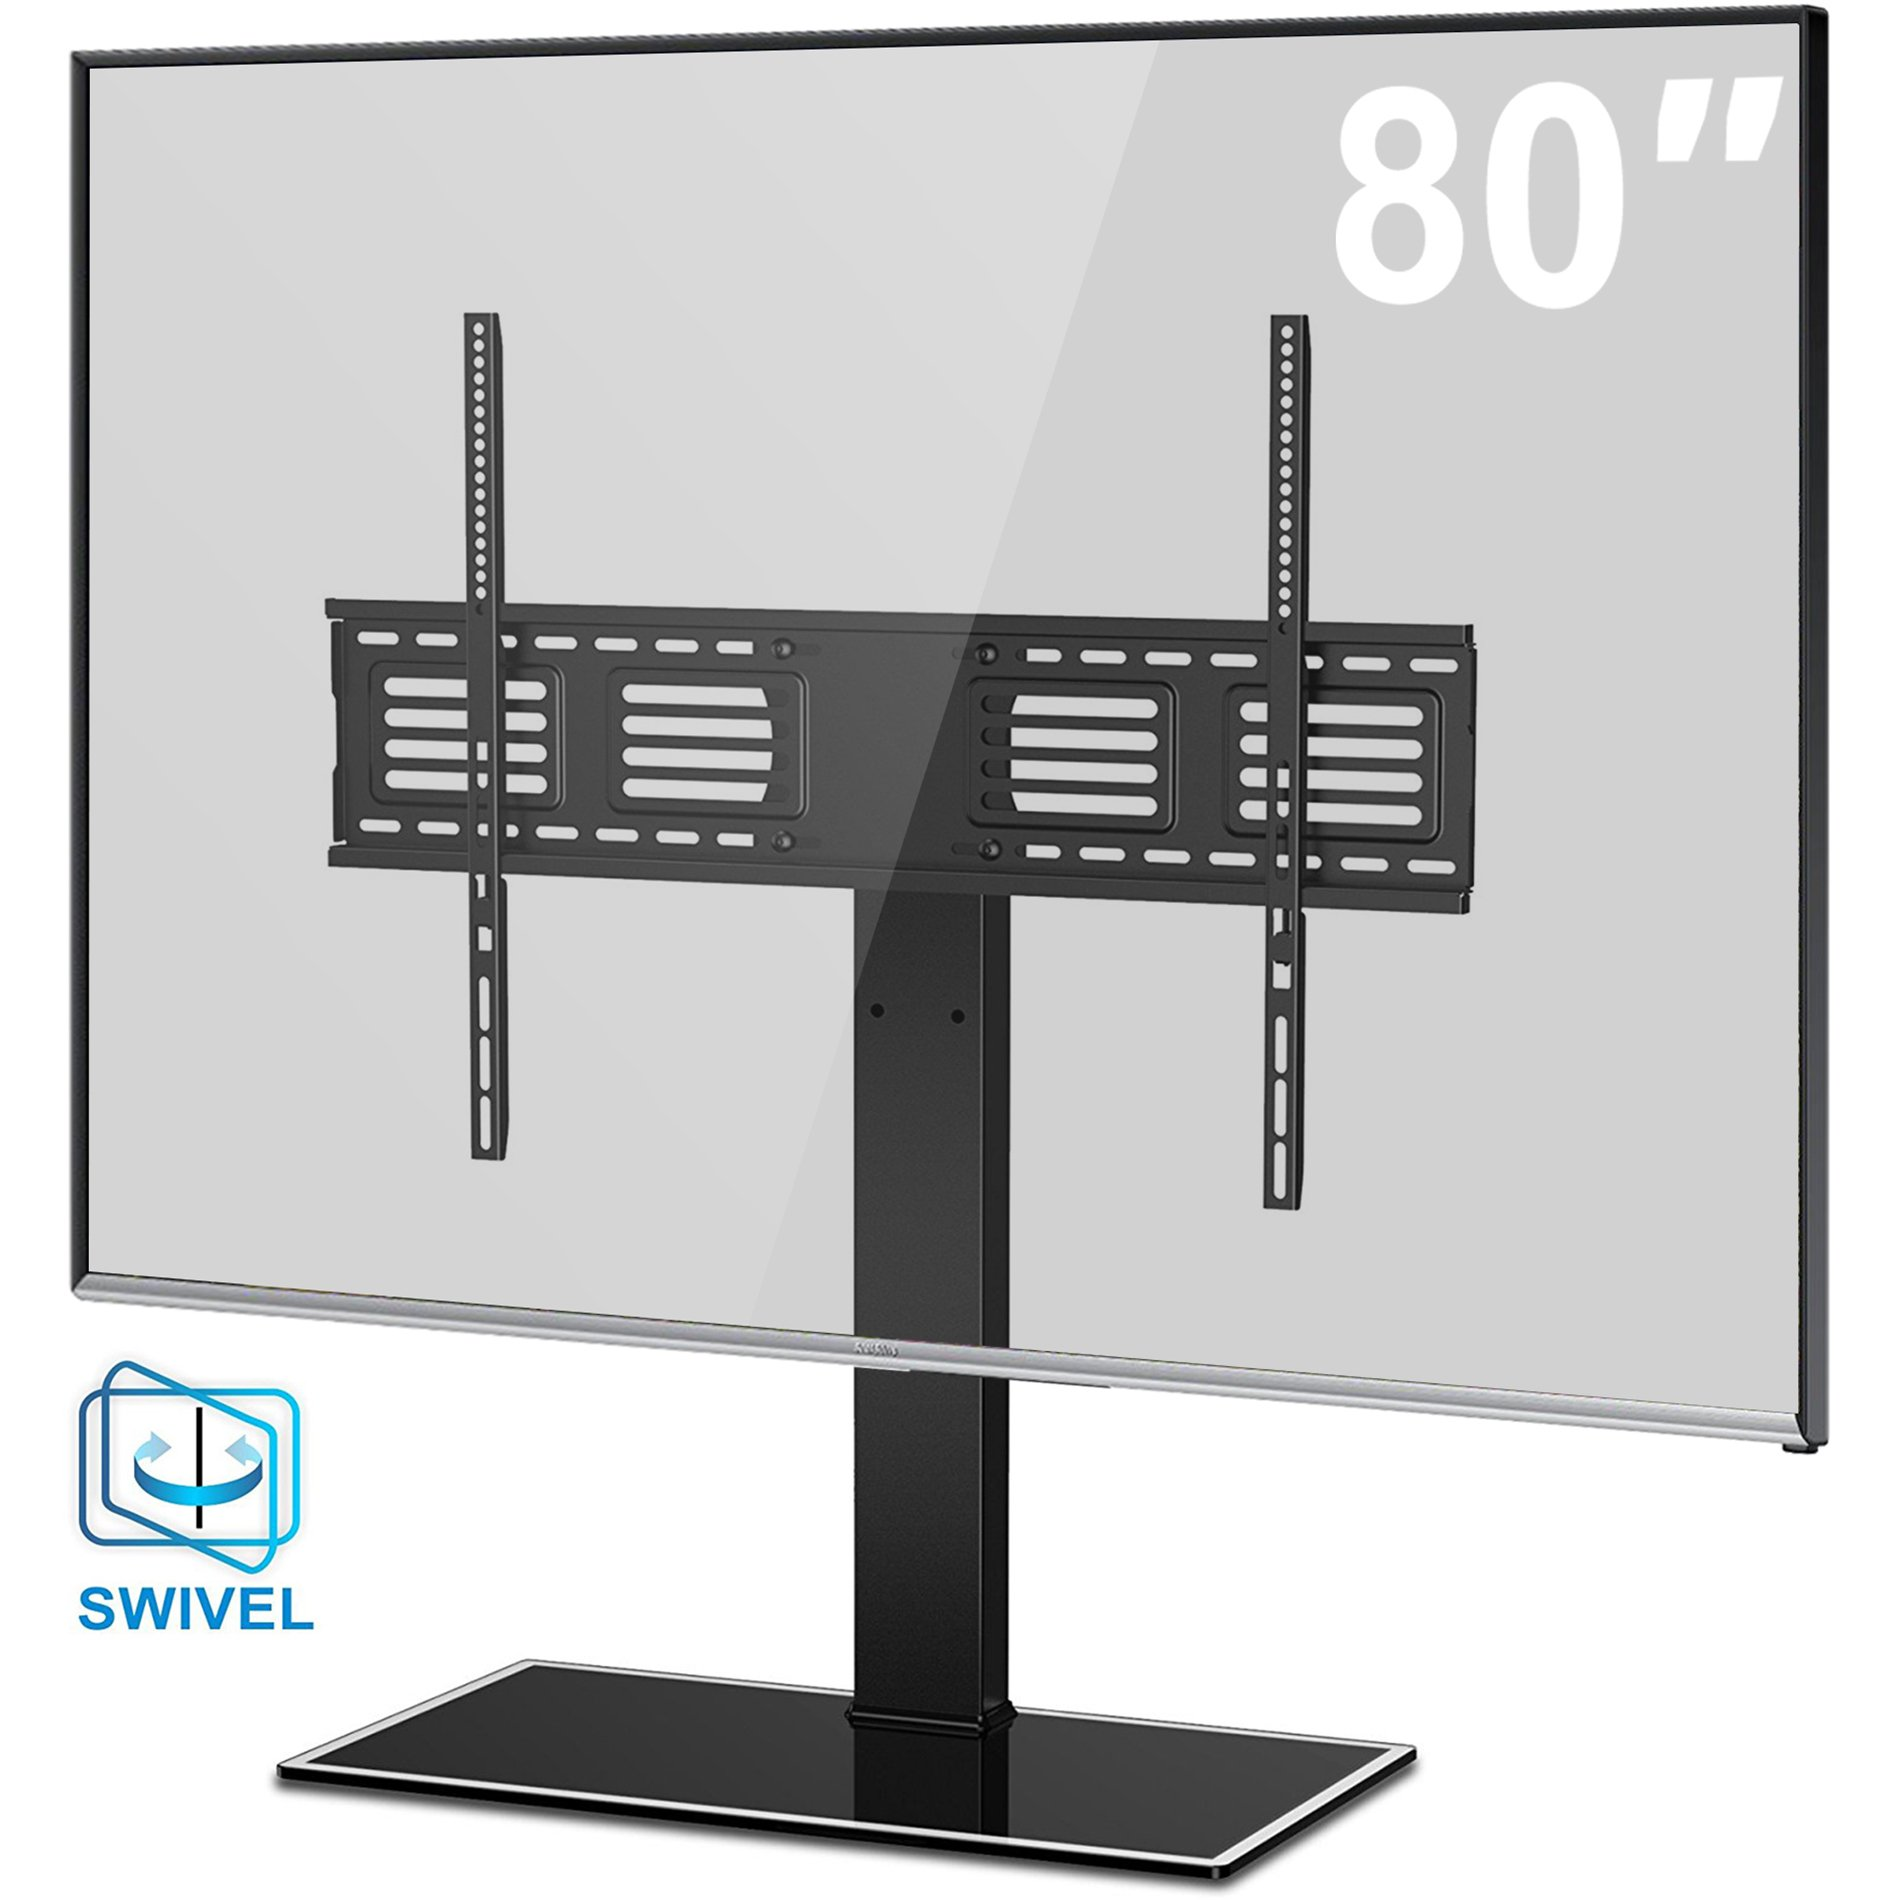 Fitueyes Universal TV Stand with Swivel mount Height Adjustable for 50inch to 80 inch TV FTT107003GB